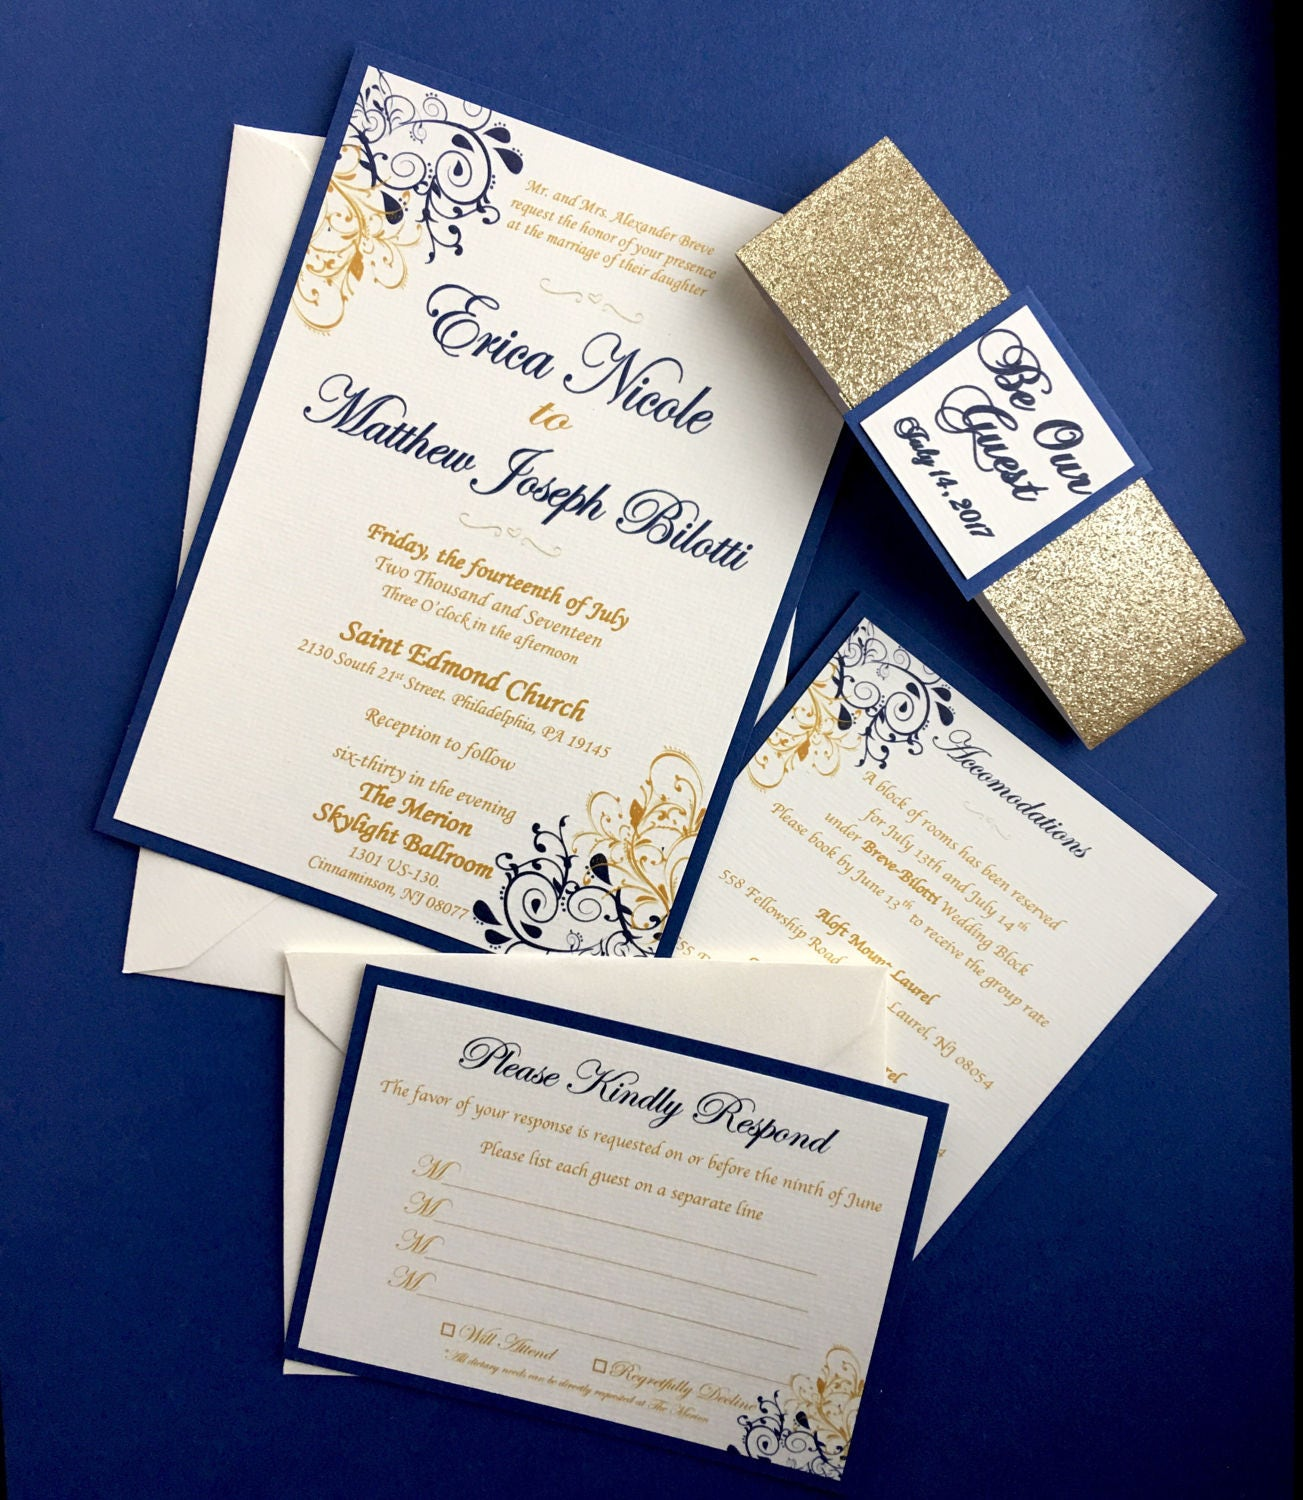 Beauty and The Beast Themed Wedding Invitations - Sapphire Blue and Gold